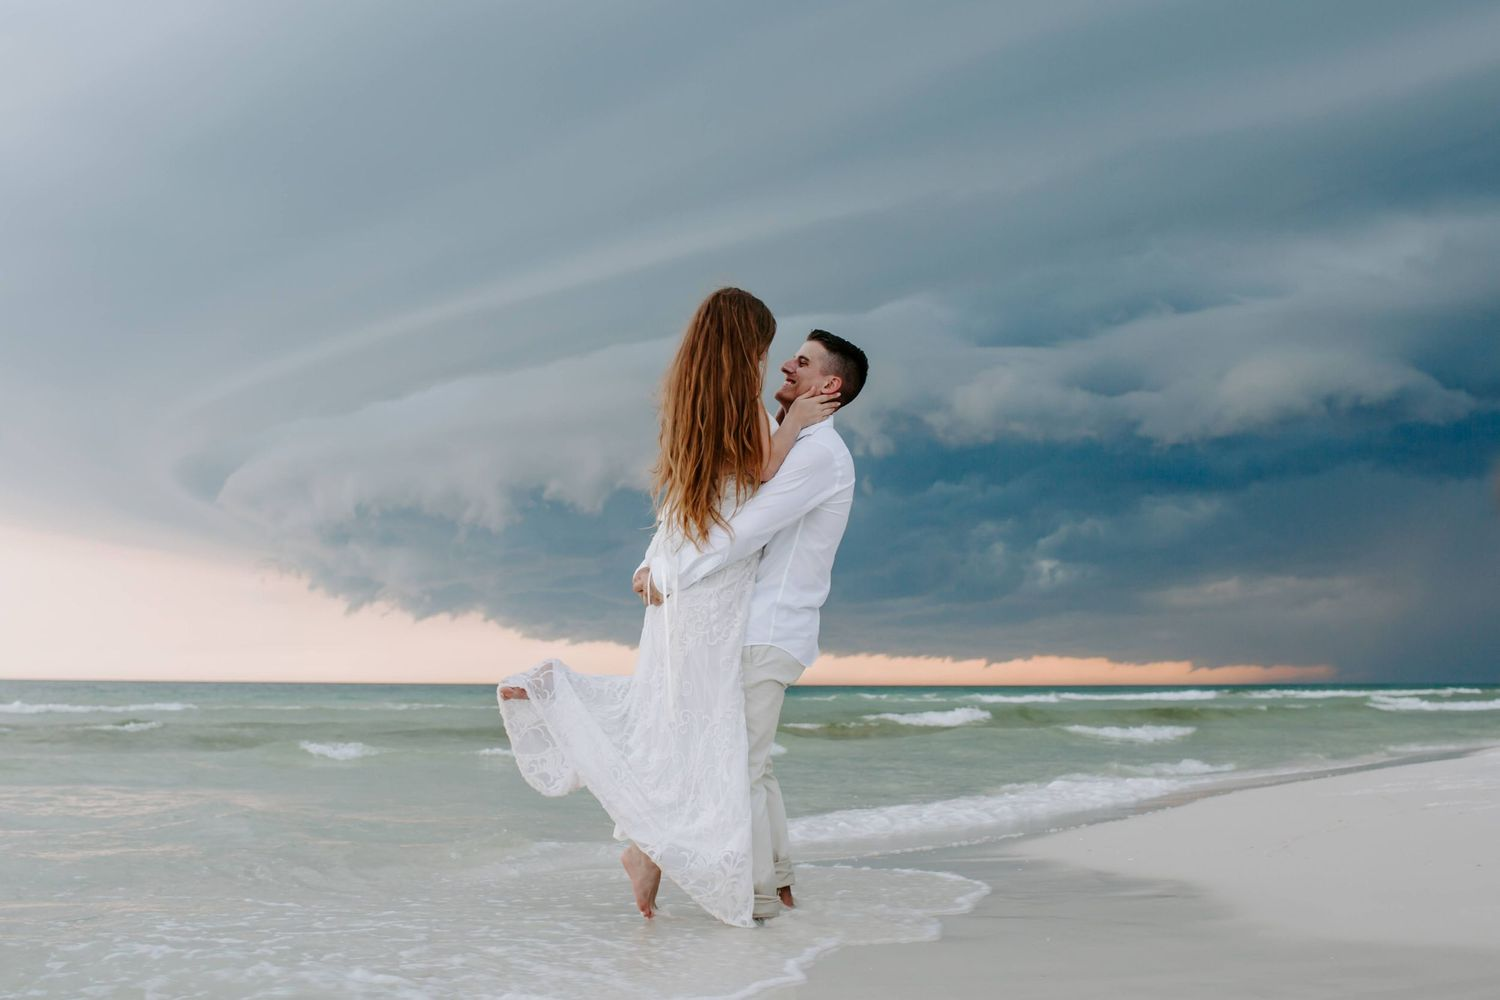 man holding his new bride while a storm brews in the background during their Destin elopement